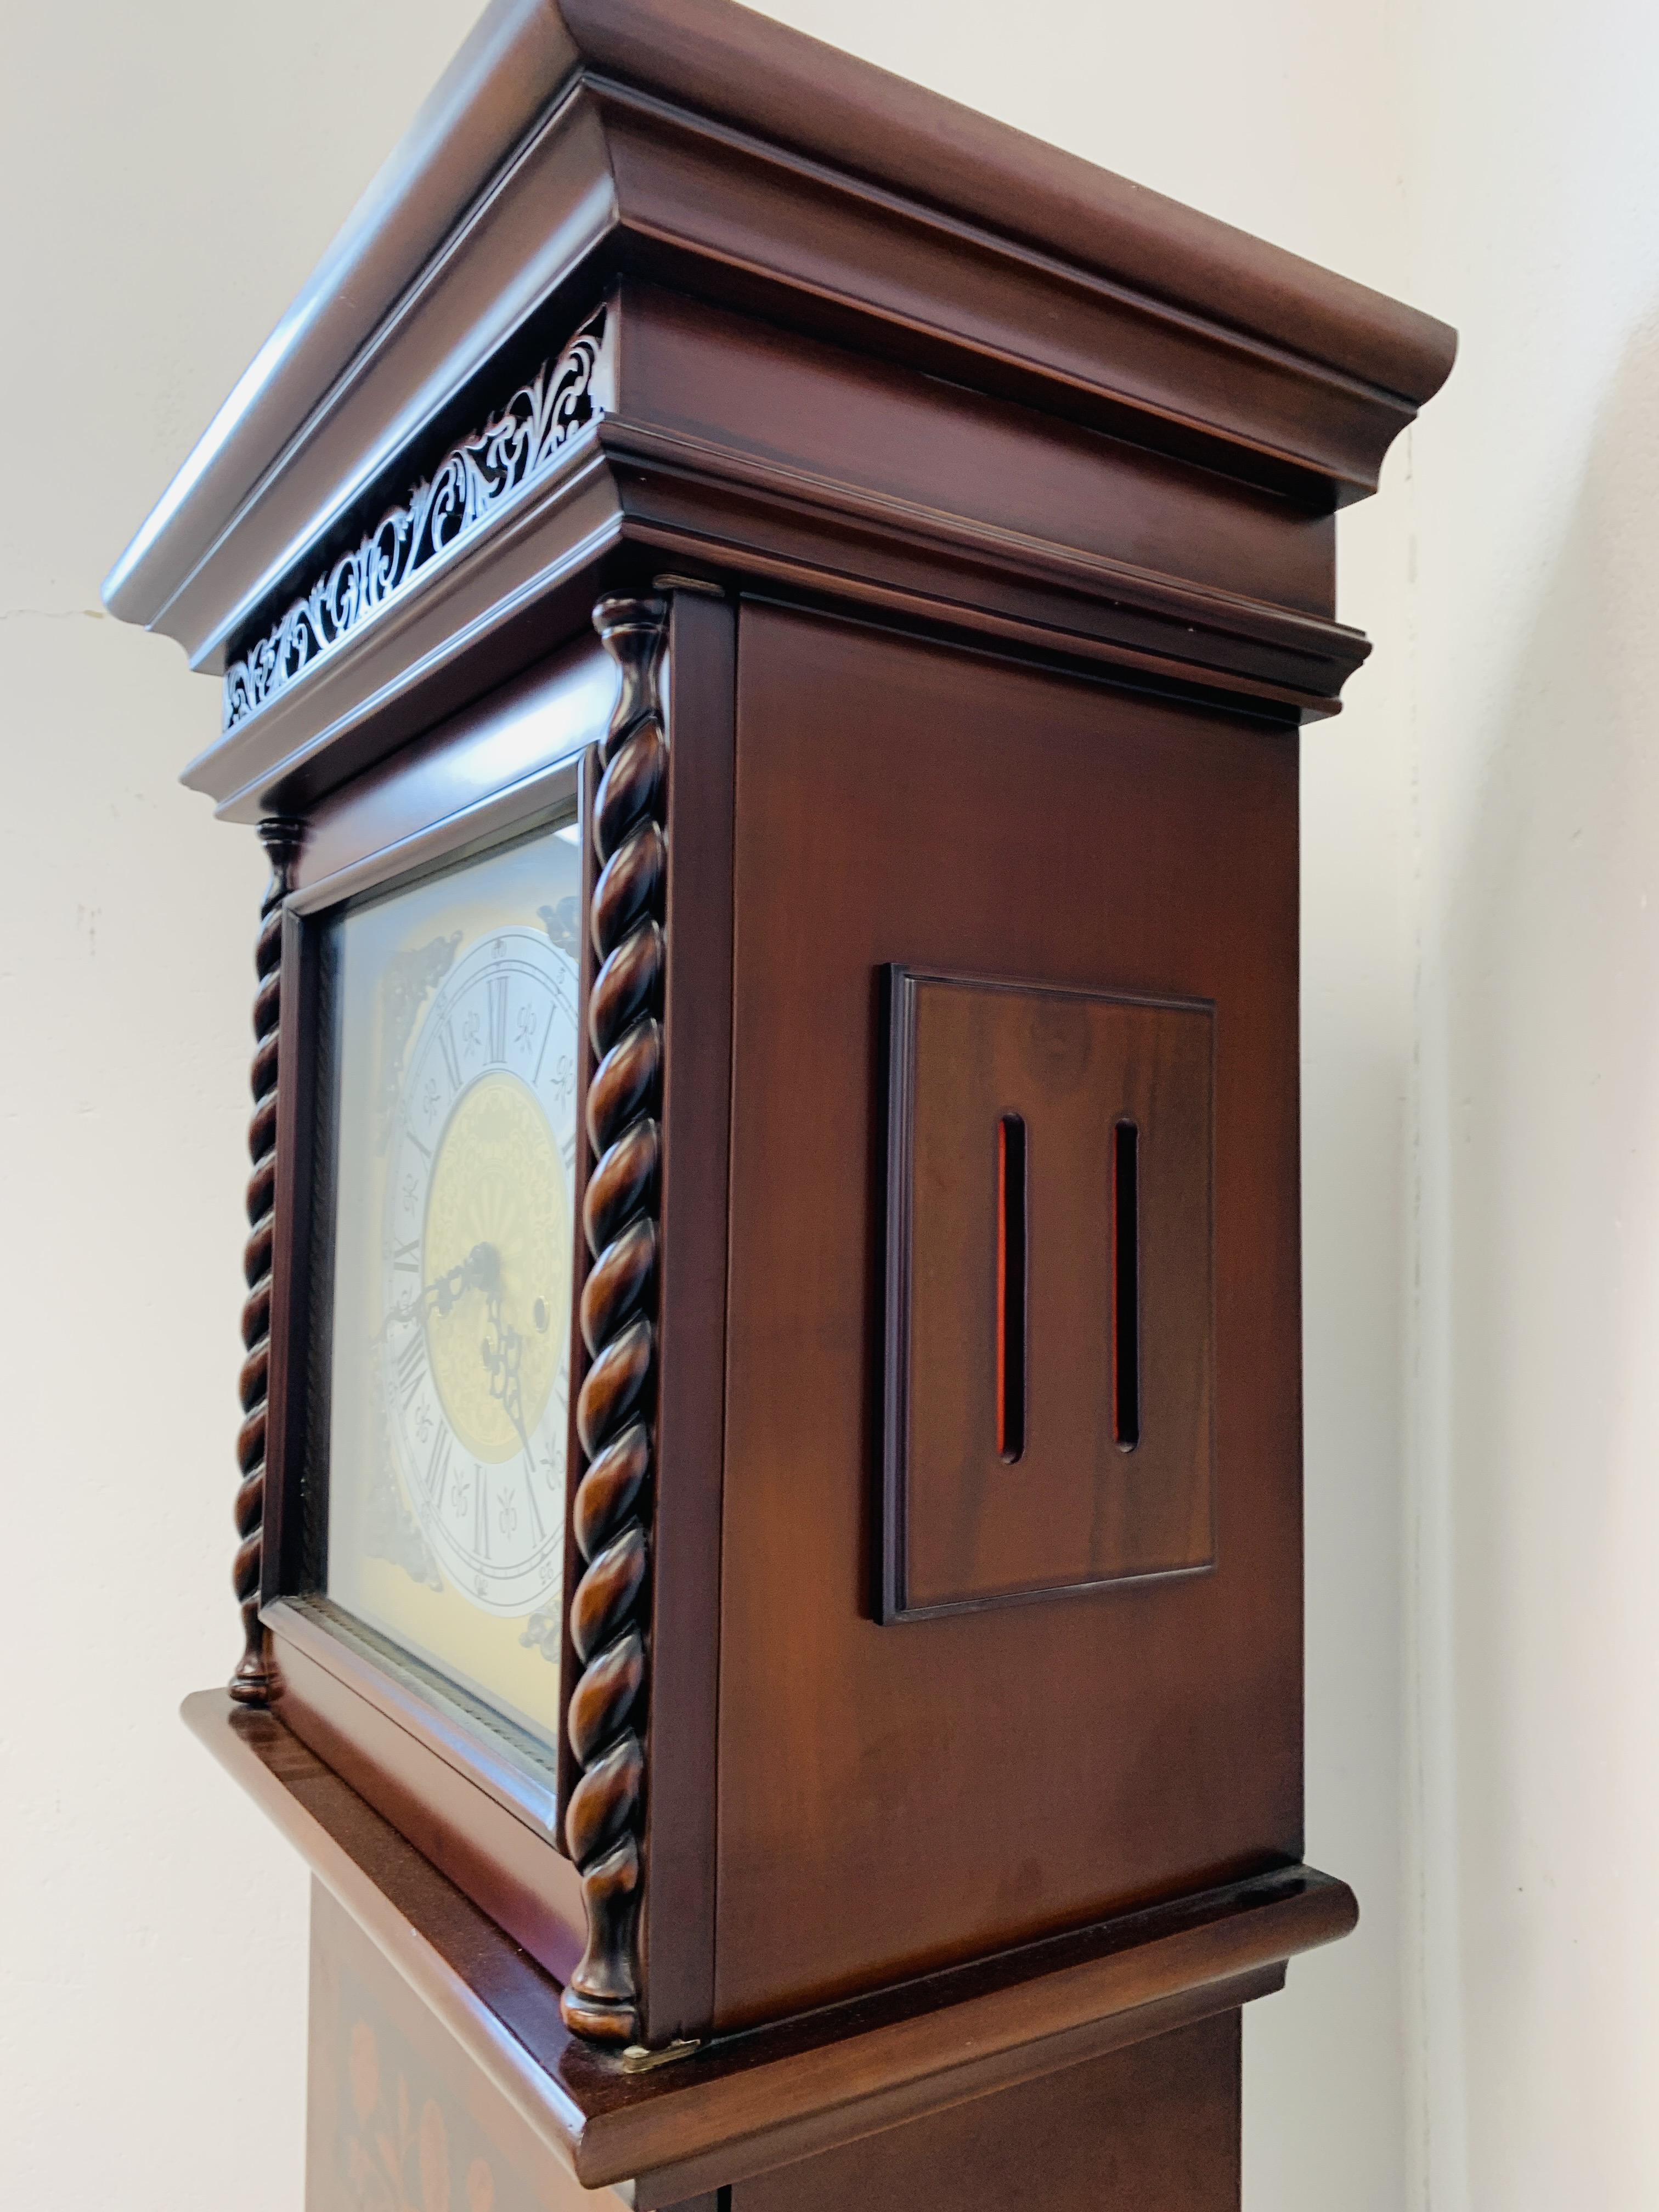 A GOOD QUALITY REPRODUCTION LONG CASE CLOCK - WESTMINSTER CHIME - SOLD AS SEEN - Image 10 of 19